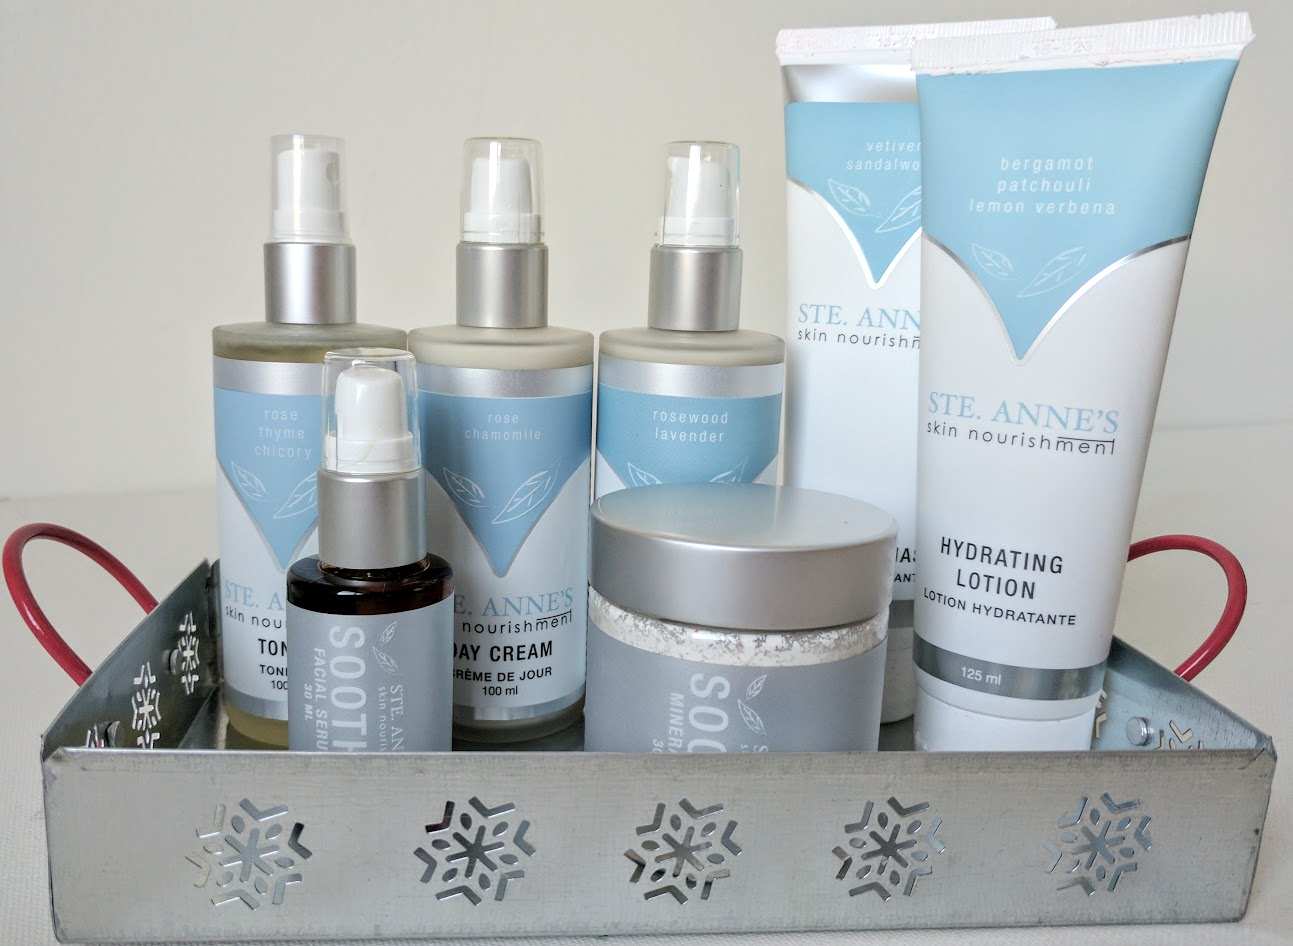 Ste. Anne's Skin Nourishment Review + Spa Getaway Giveaway